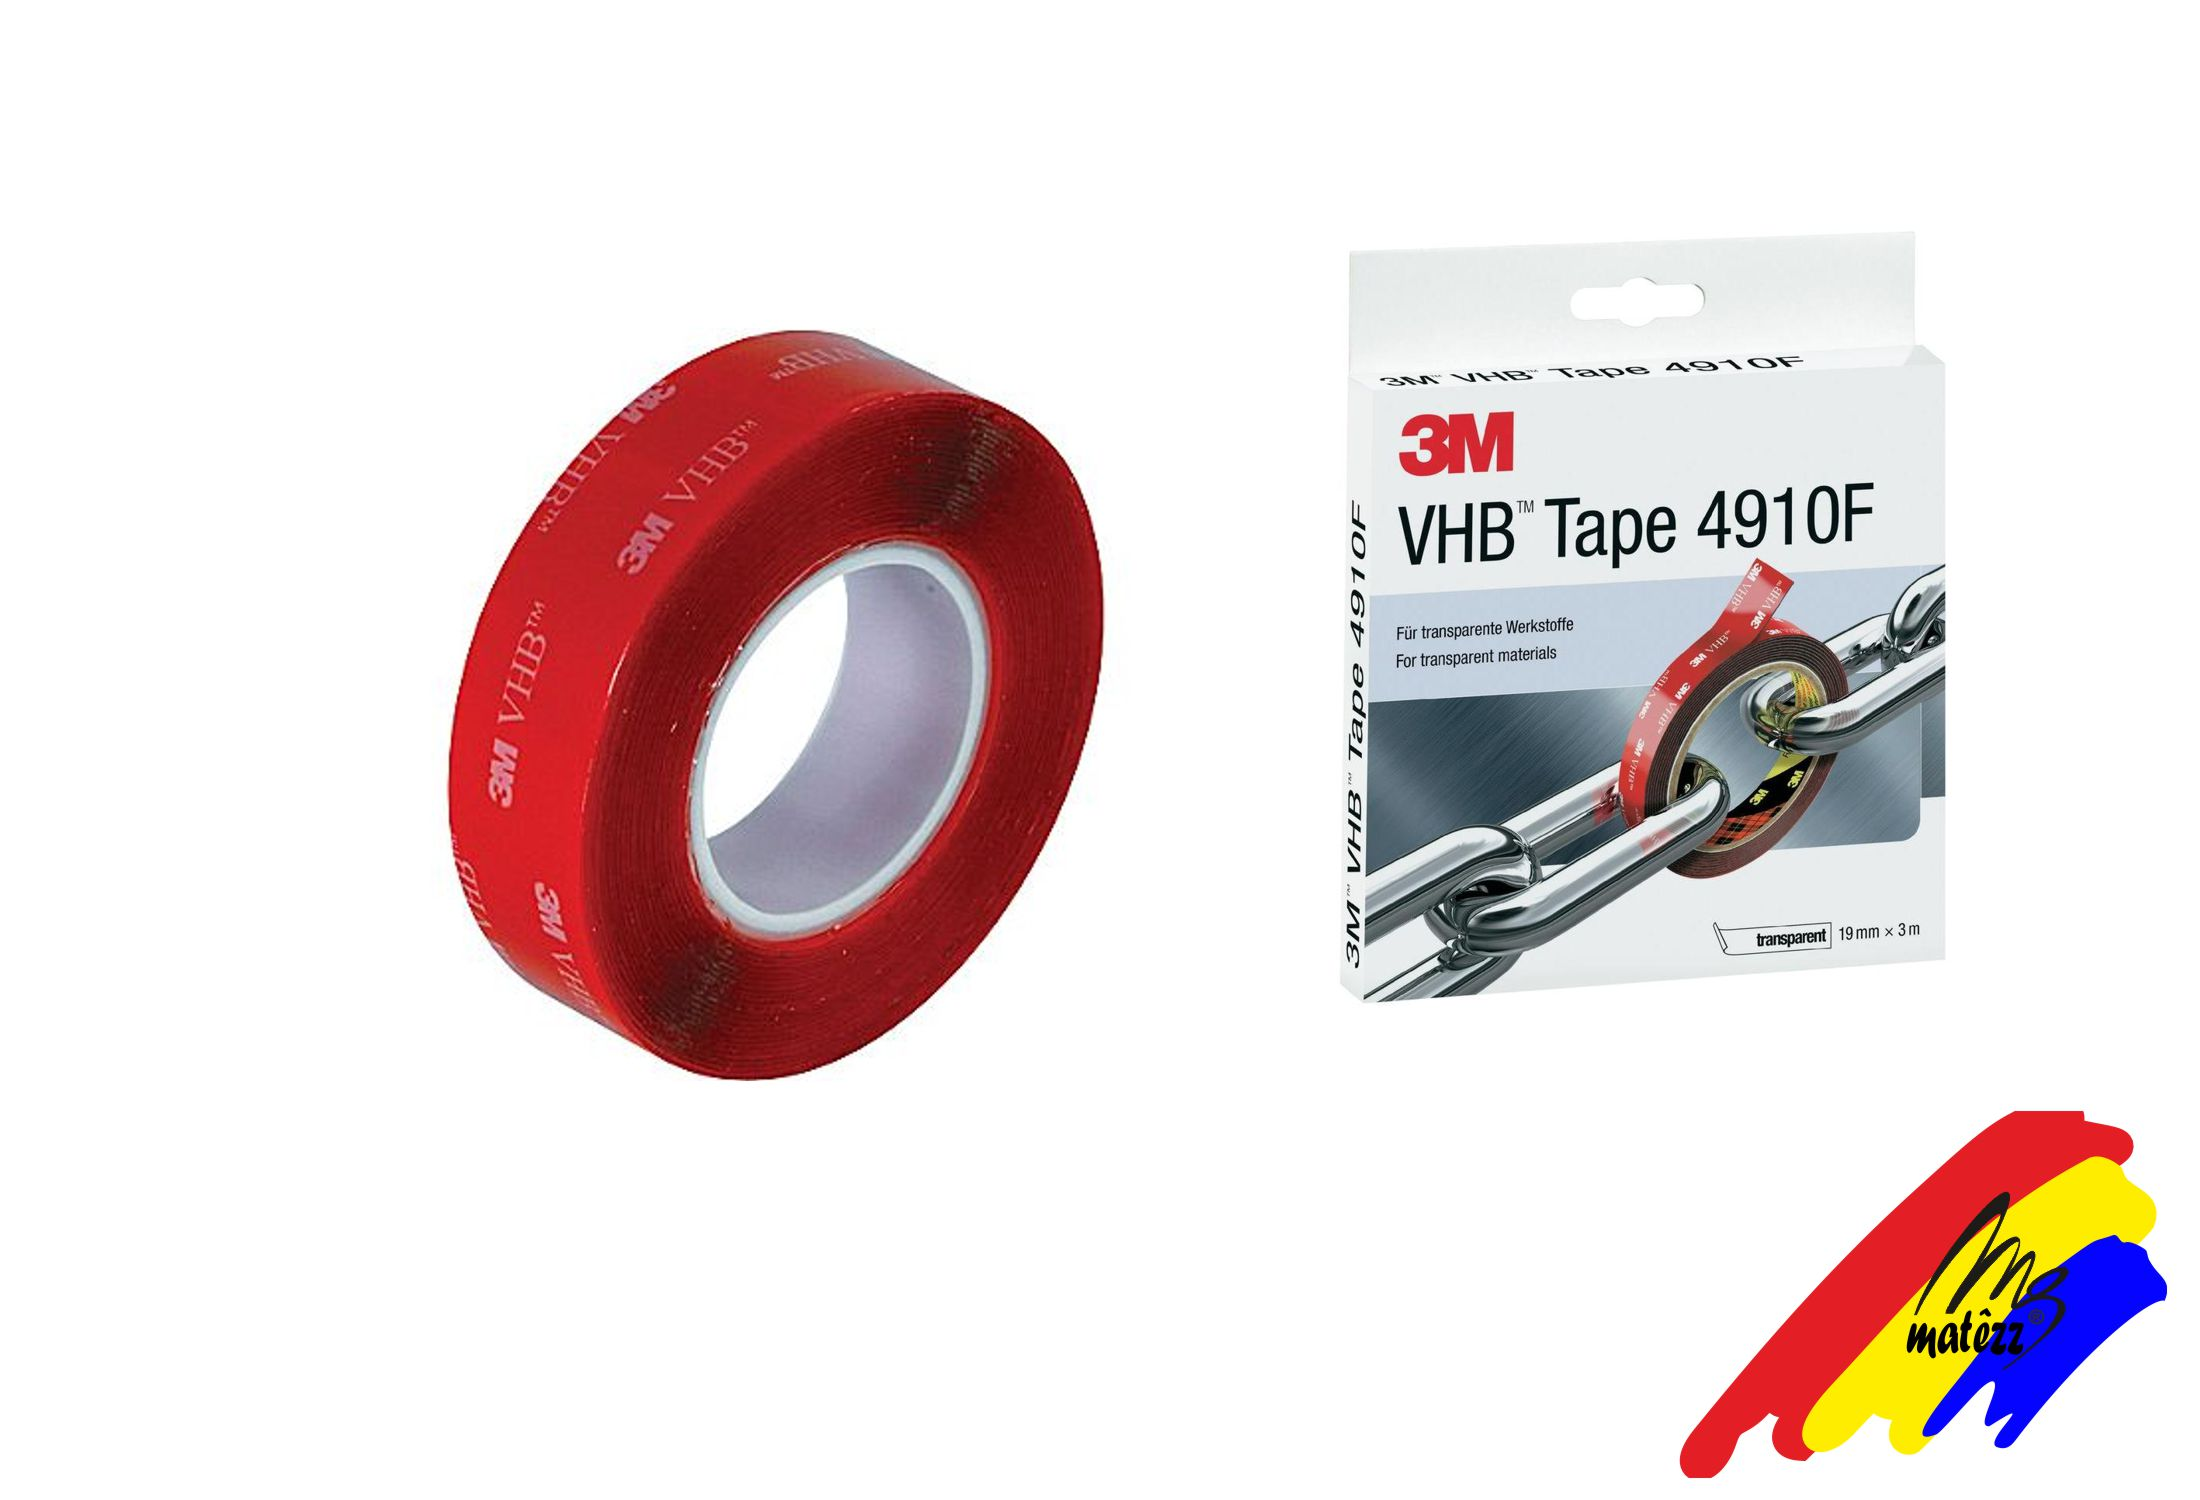 3M Vhb transparente 4910 19mm x 1mt